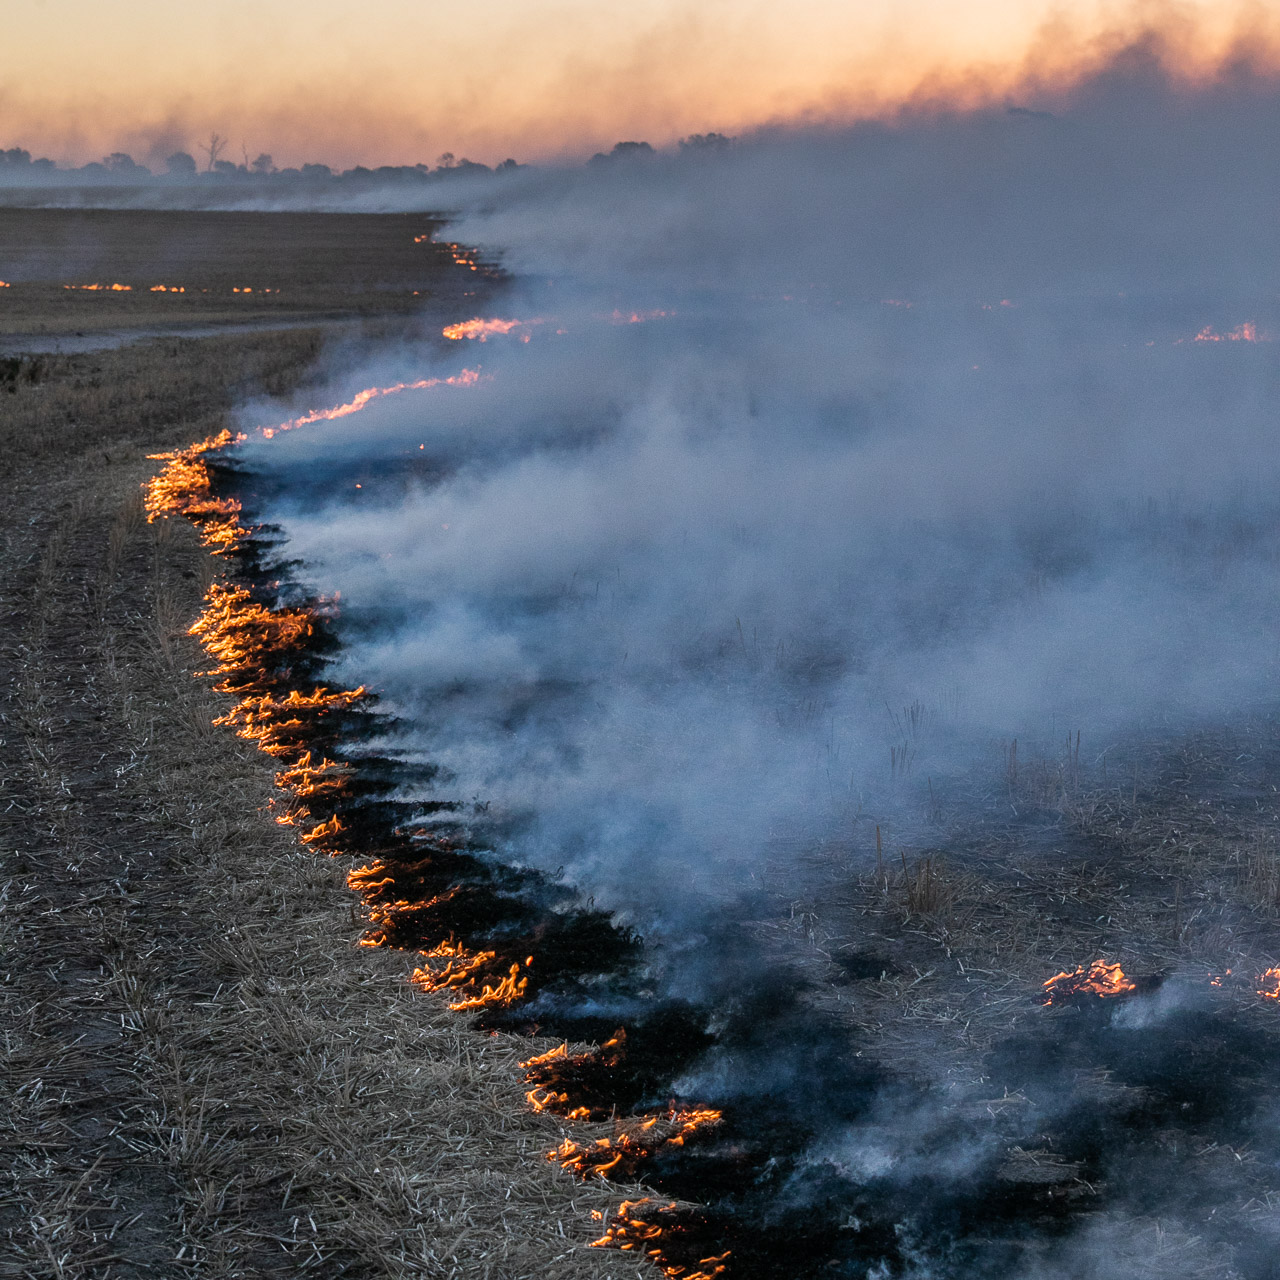 Smoke and fire at sunset during windrow burning in the Wheatbelt